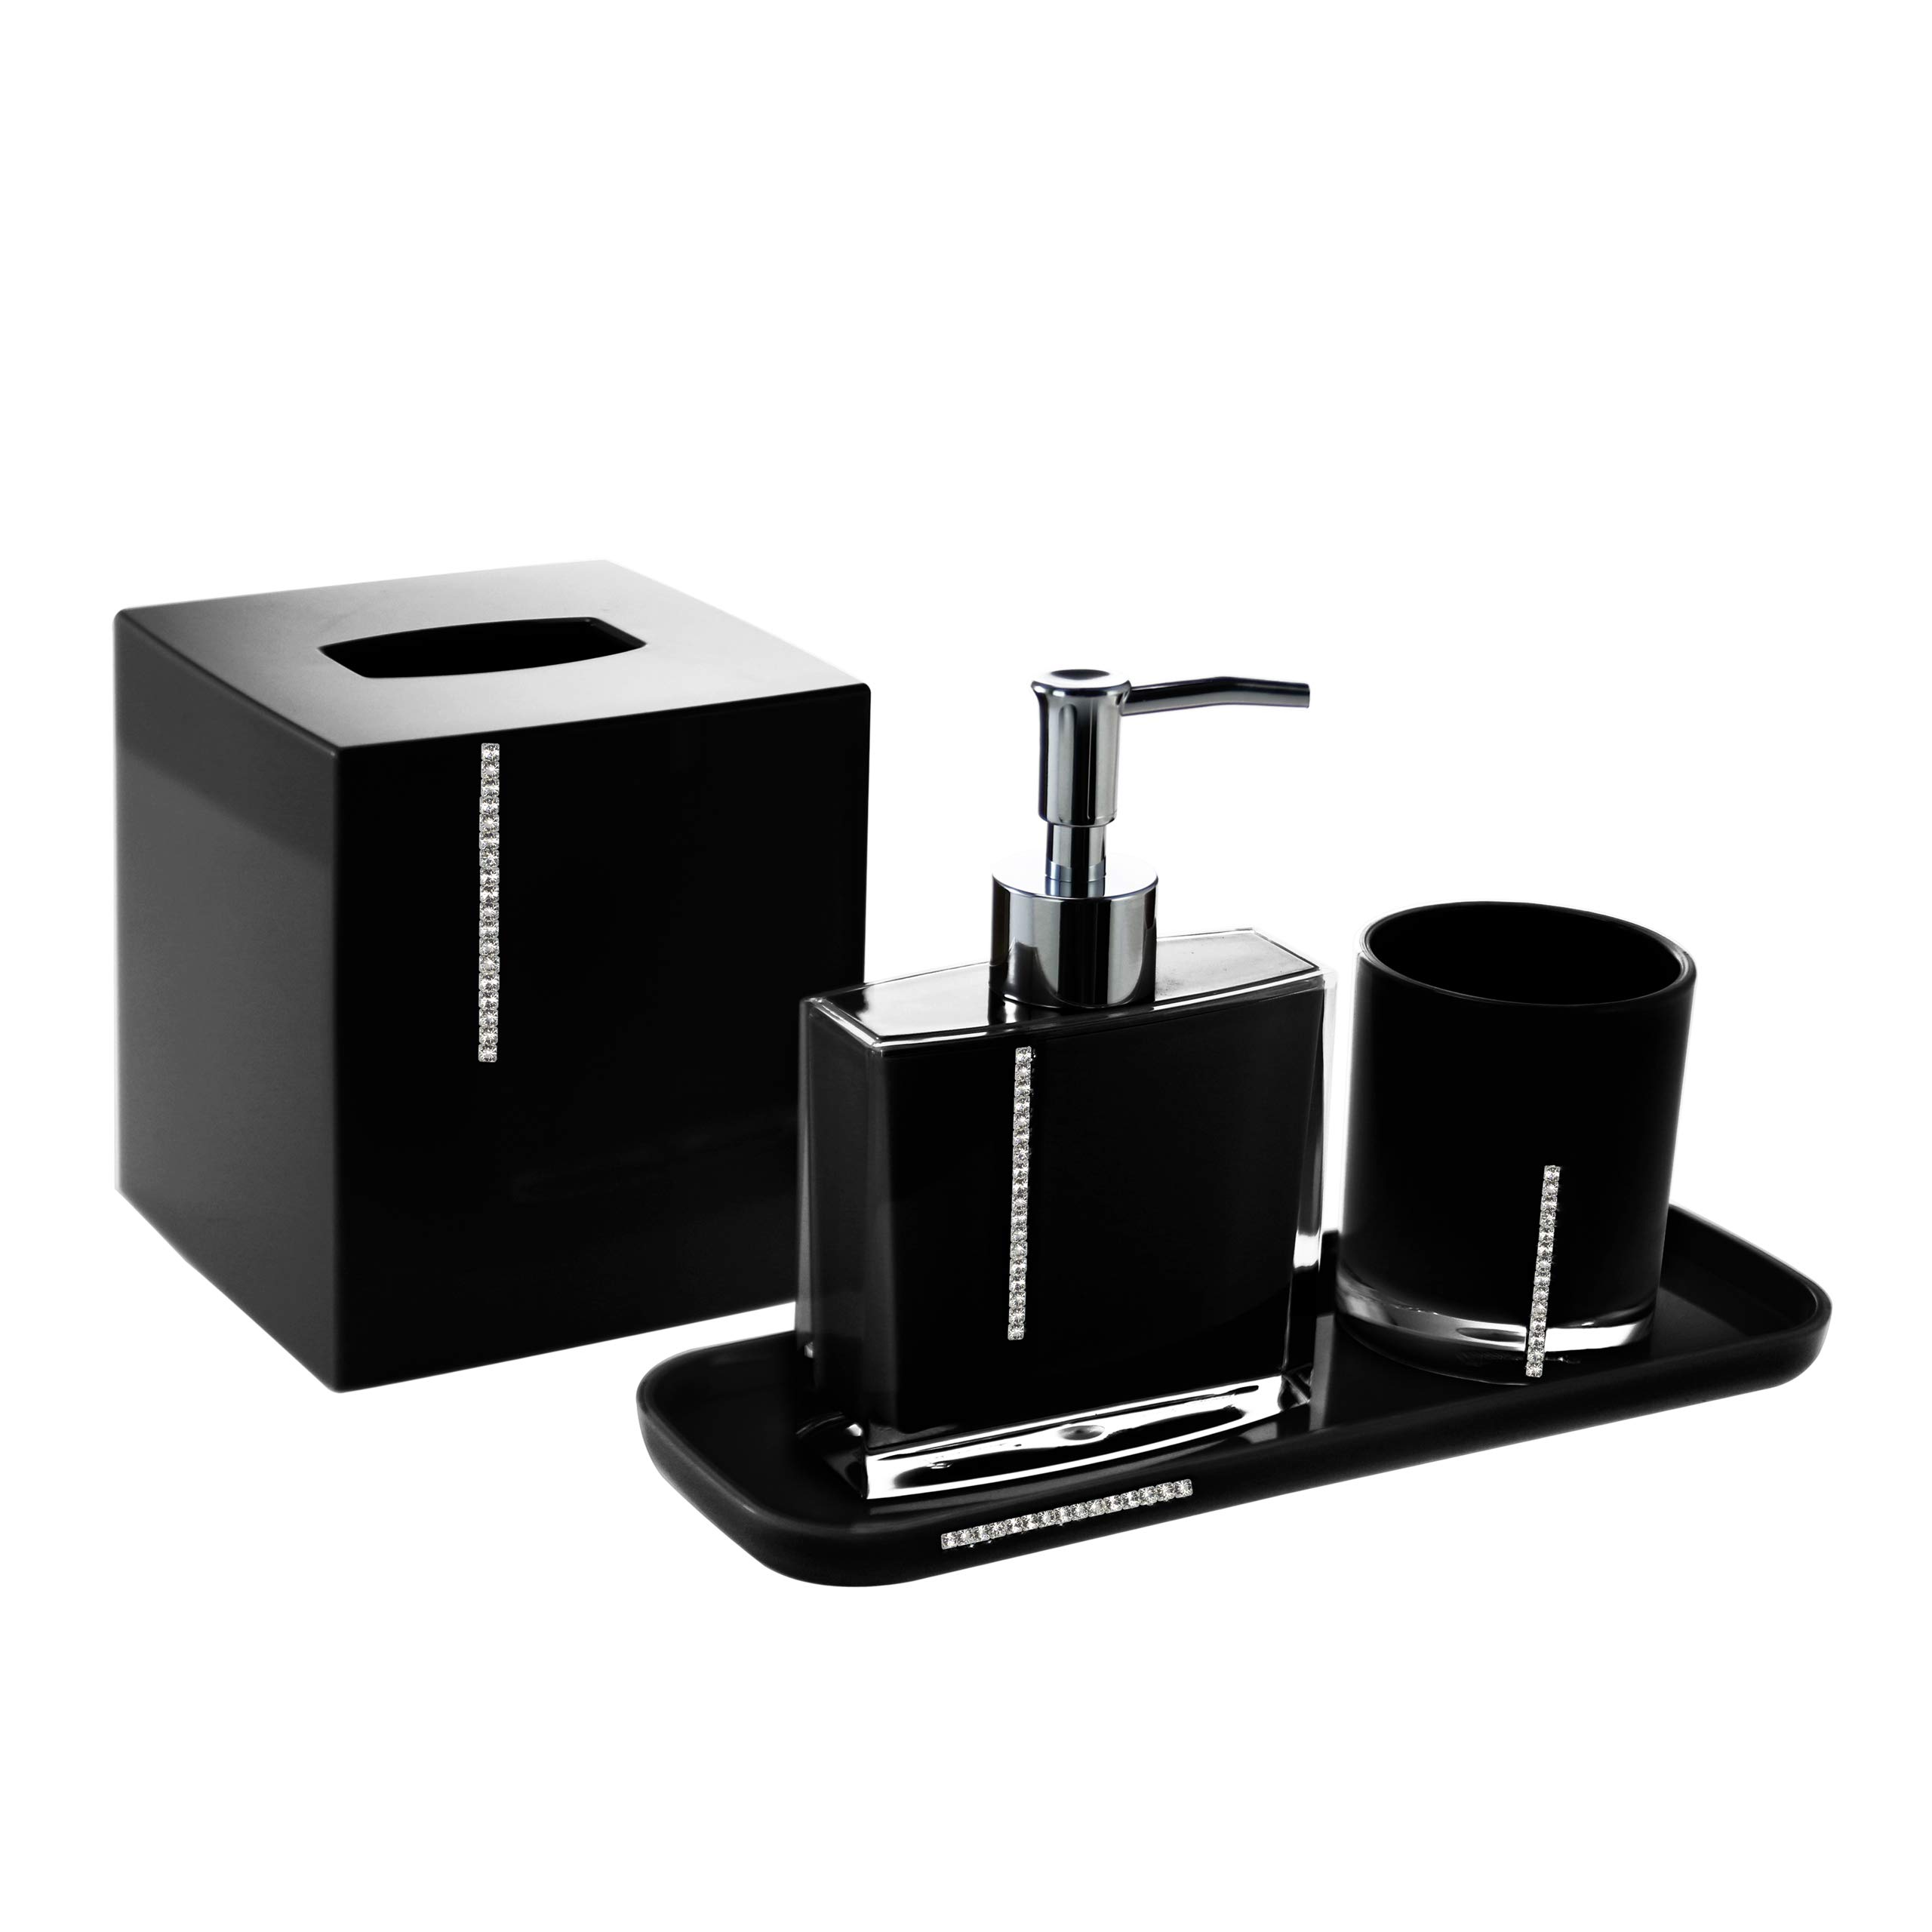 Decozen Set of 4 Pcs Bathroom Accessories Set in Crystal Black Decoration Bath Accessories Set with Tumbler Lotion Dispenser Square Tray Tissue Box Bathroom Decor Accessory Set